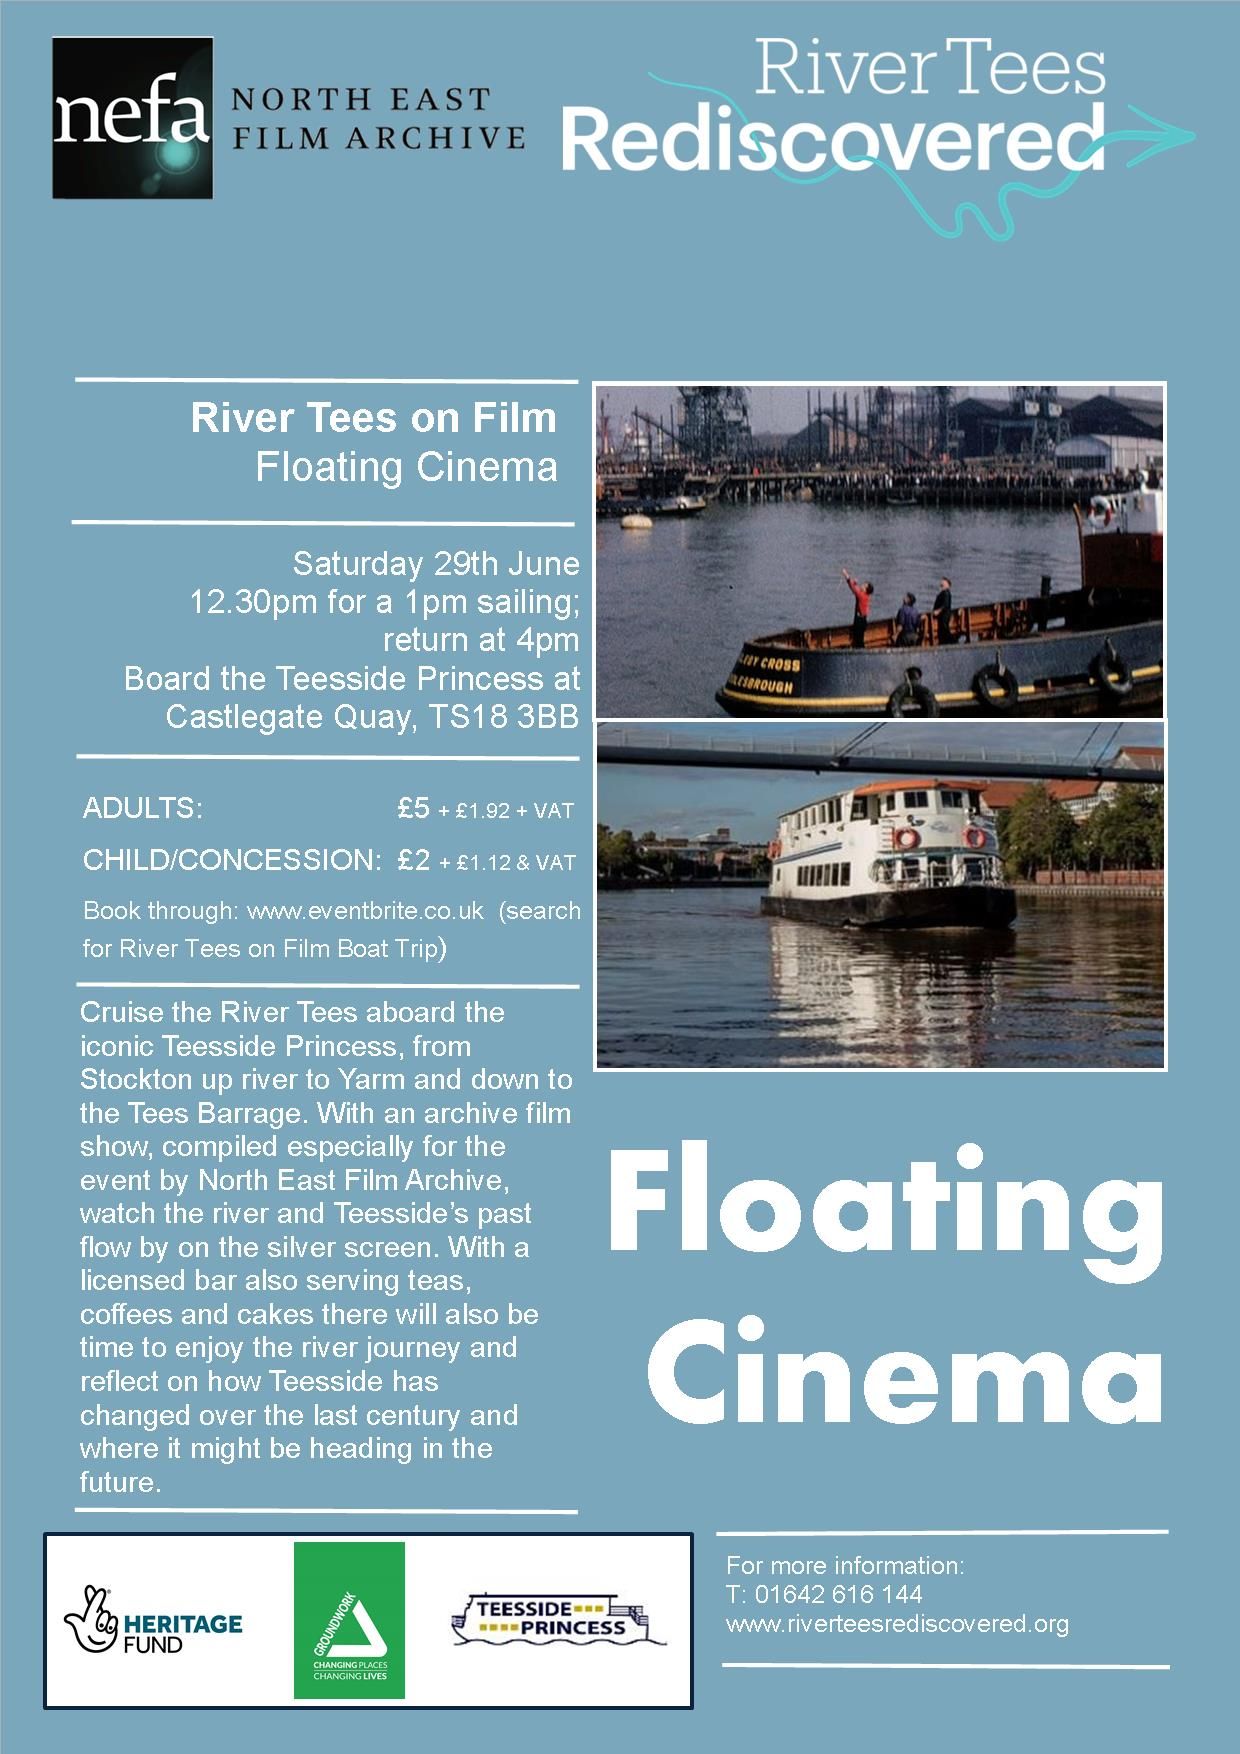 20190612_Floating Cinema Poster_Final.jpg